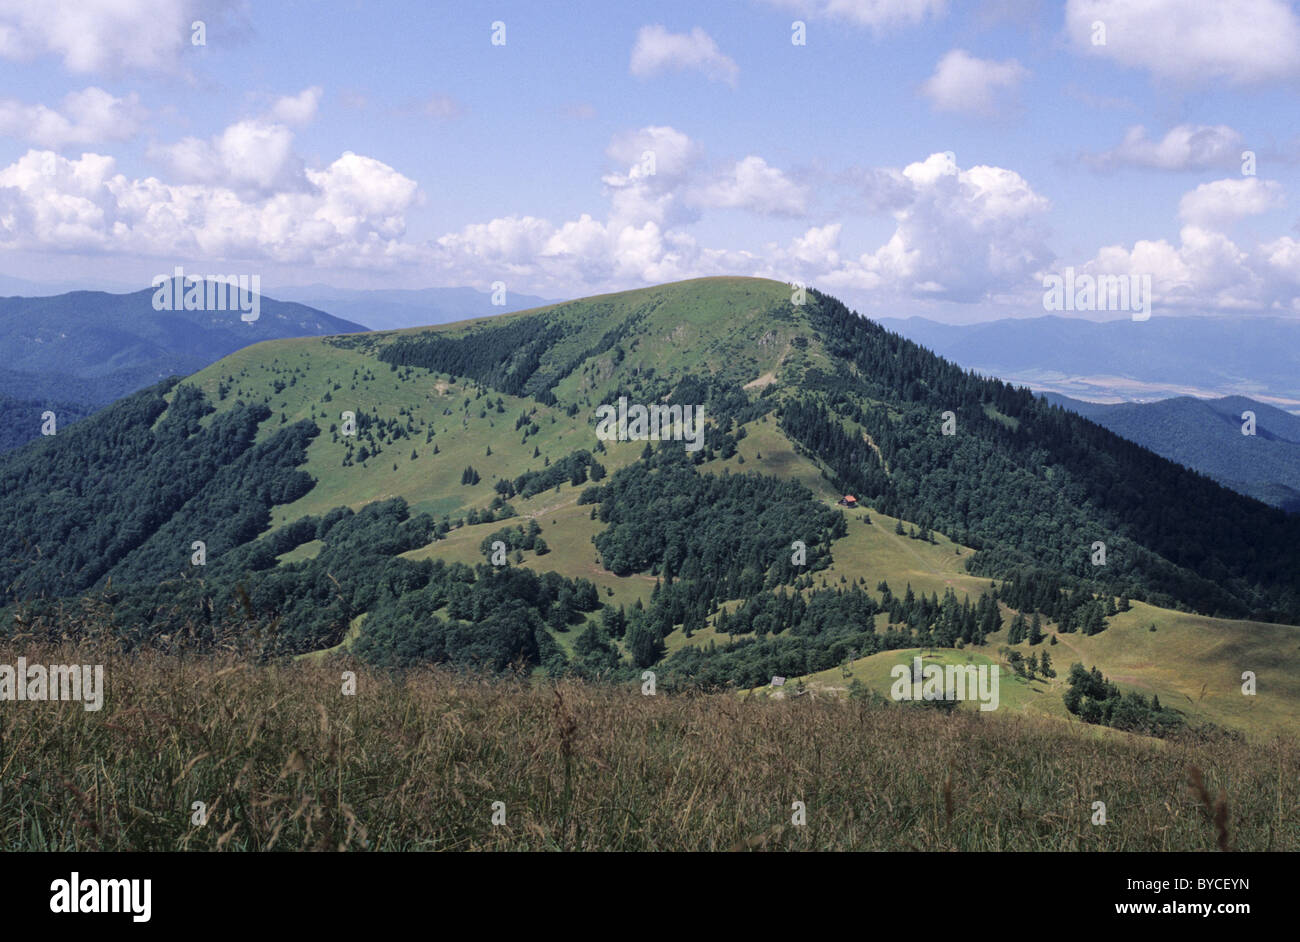 View of the Borisov hill, popular tourist destination at the center of Velka Fatra mountains, Slovakia. - Stock Image